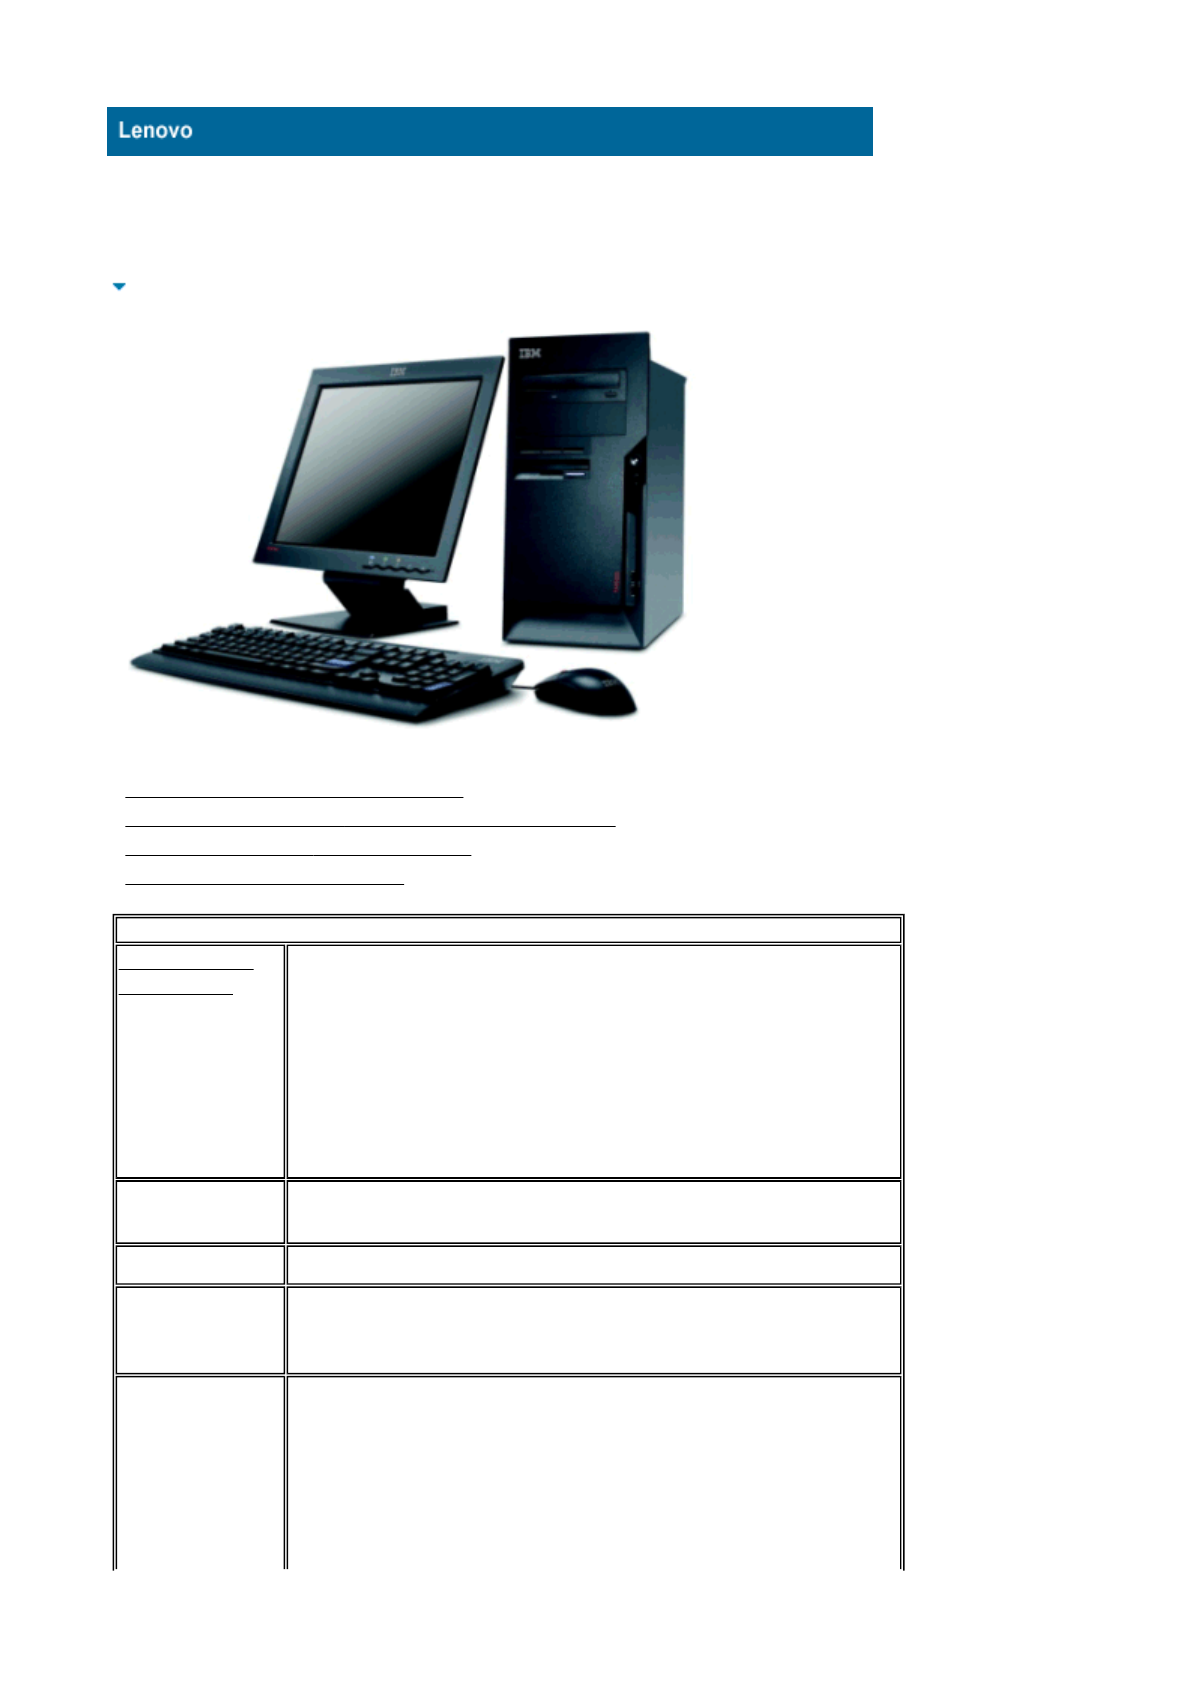 IBM MT-M 8189 WINDOWS 8 X64 TREIBER